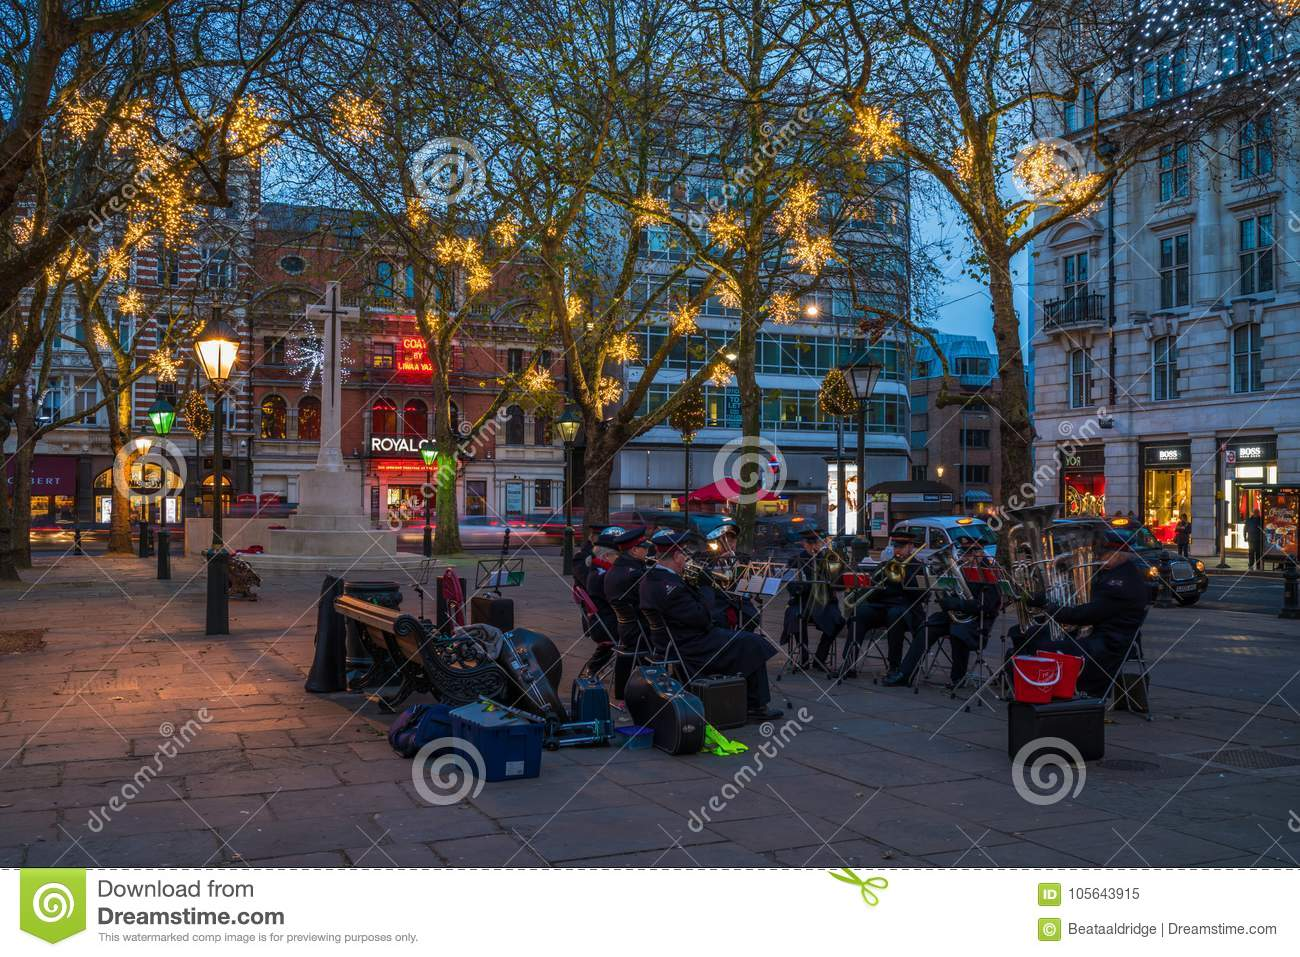 Salvation Army Brass Band Plays Music On Duke Of York Square In